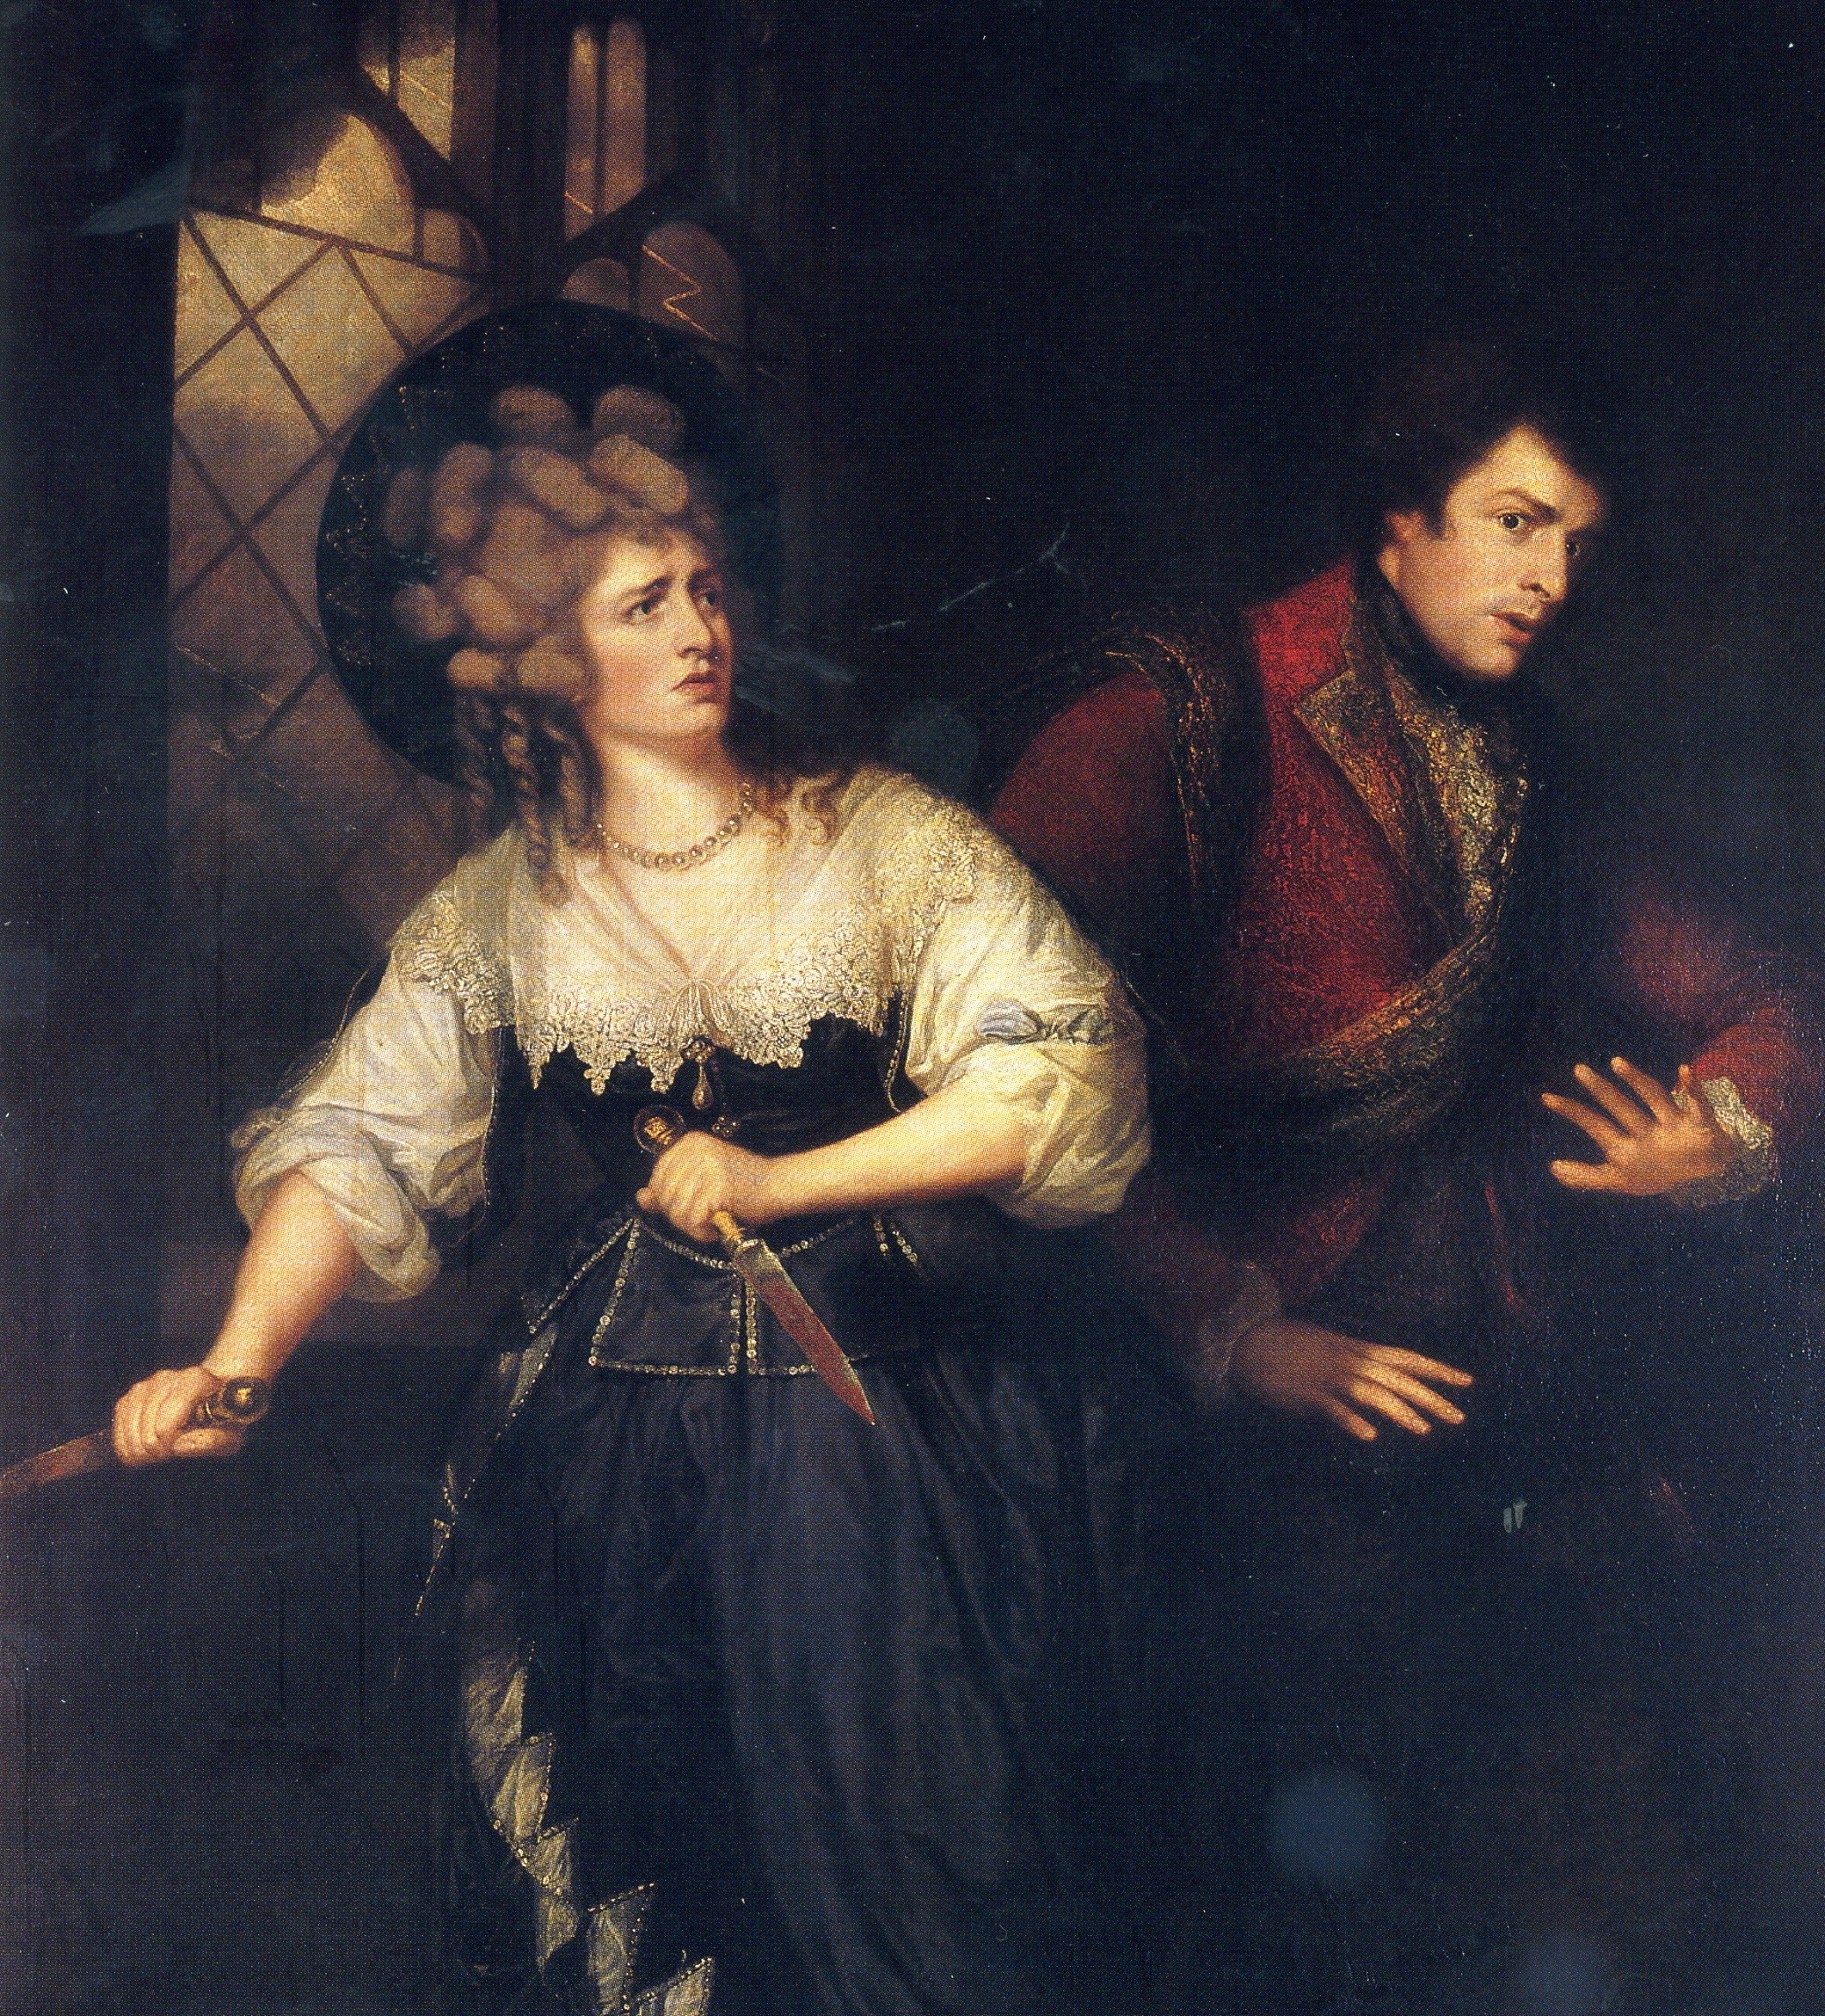 influence does lady macbeth have on her husband Lady macbeth is a massive influence on her husband many people say that without her influence macbeth would have never killed the king however others have the view that lady macebth did not plant the ideas in macbeth's head.